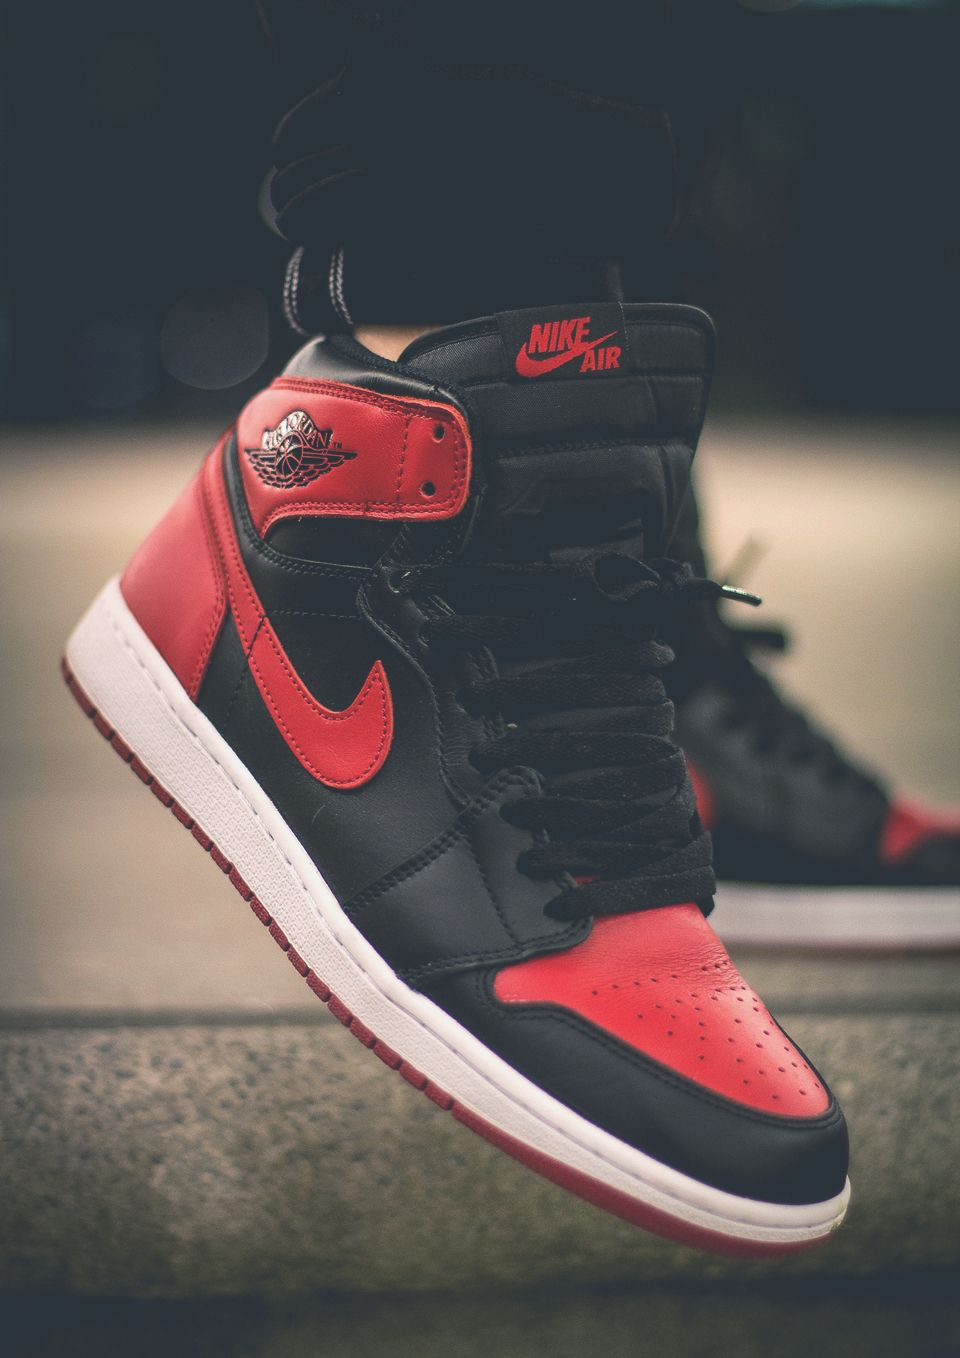 #snakerest Nike Air Jordan 1 Retro. Check out a 19 point step-by